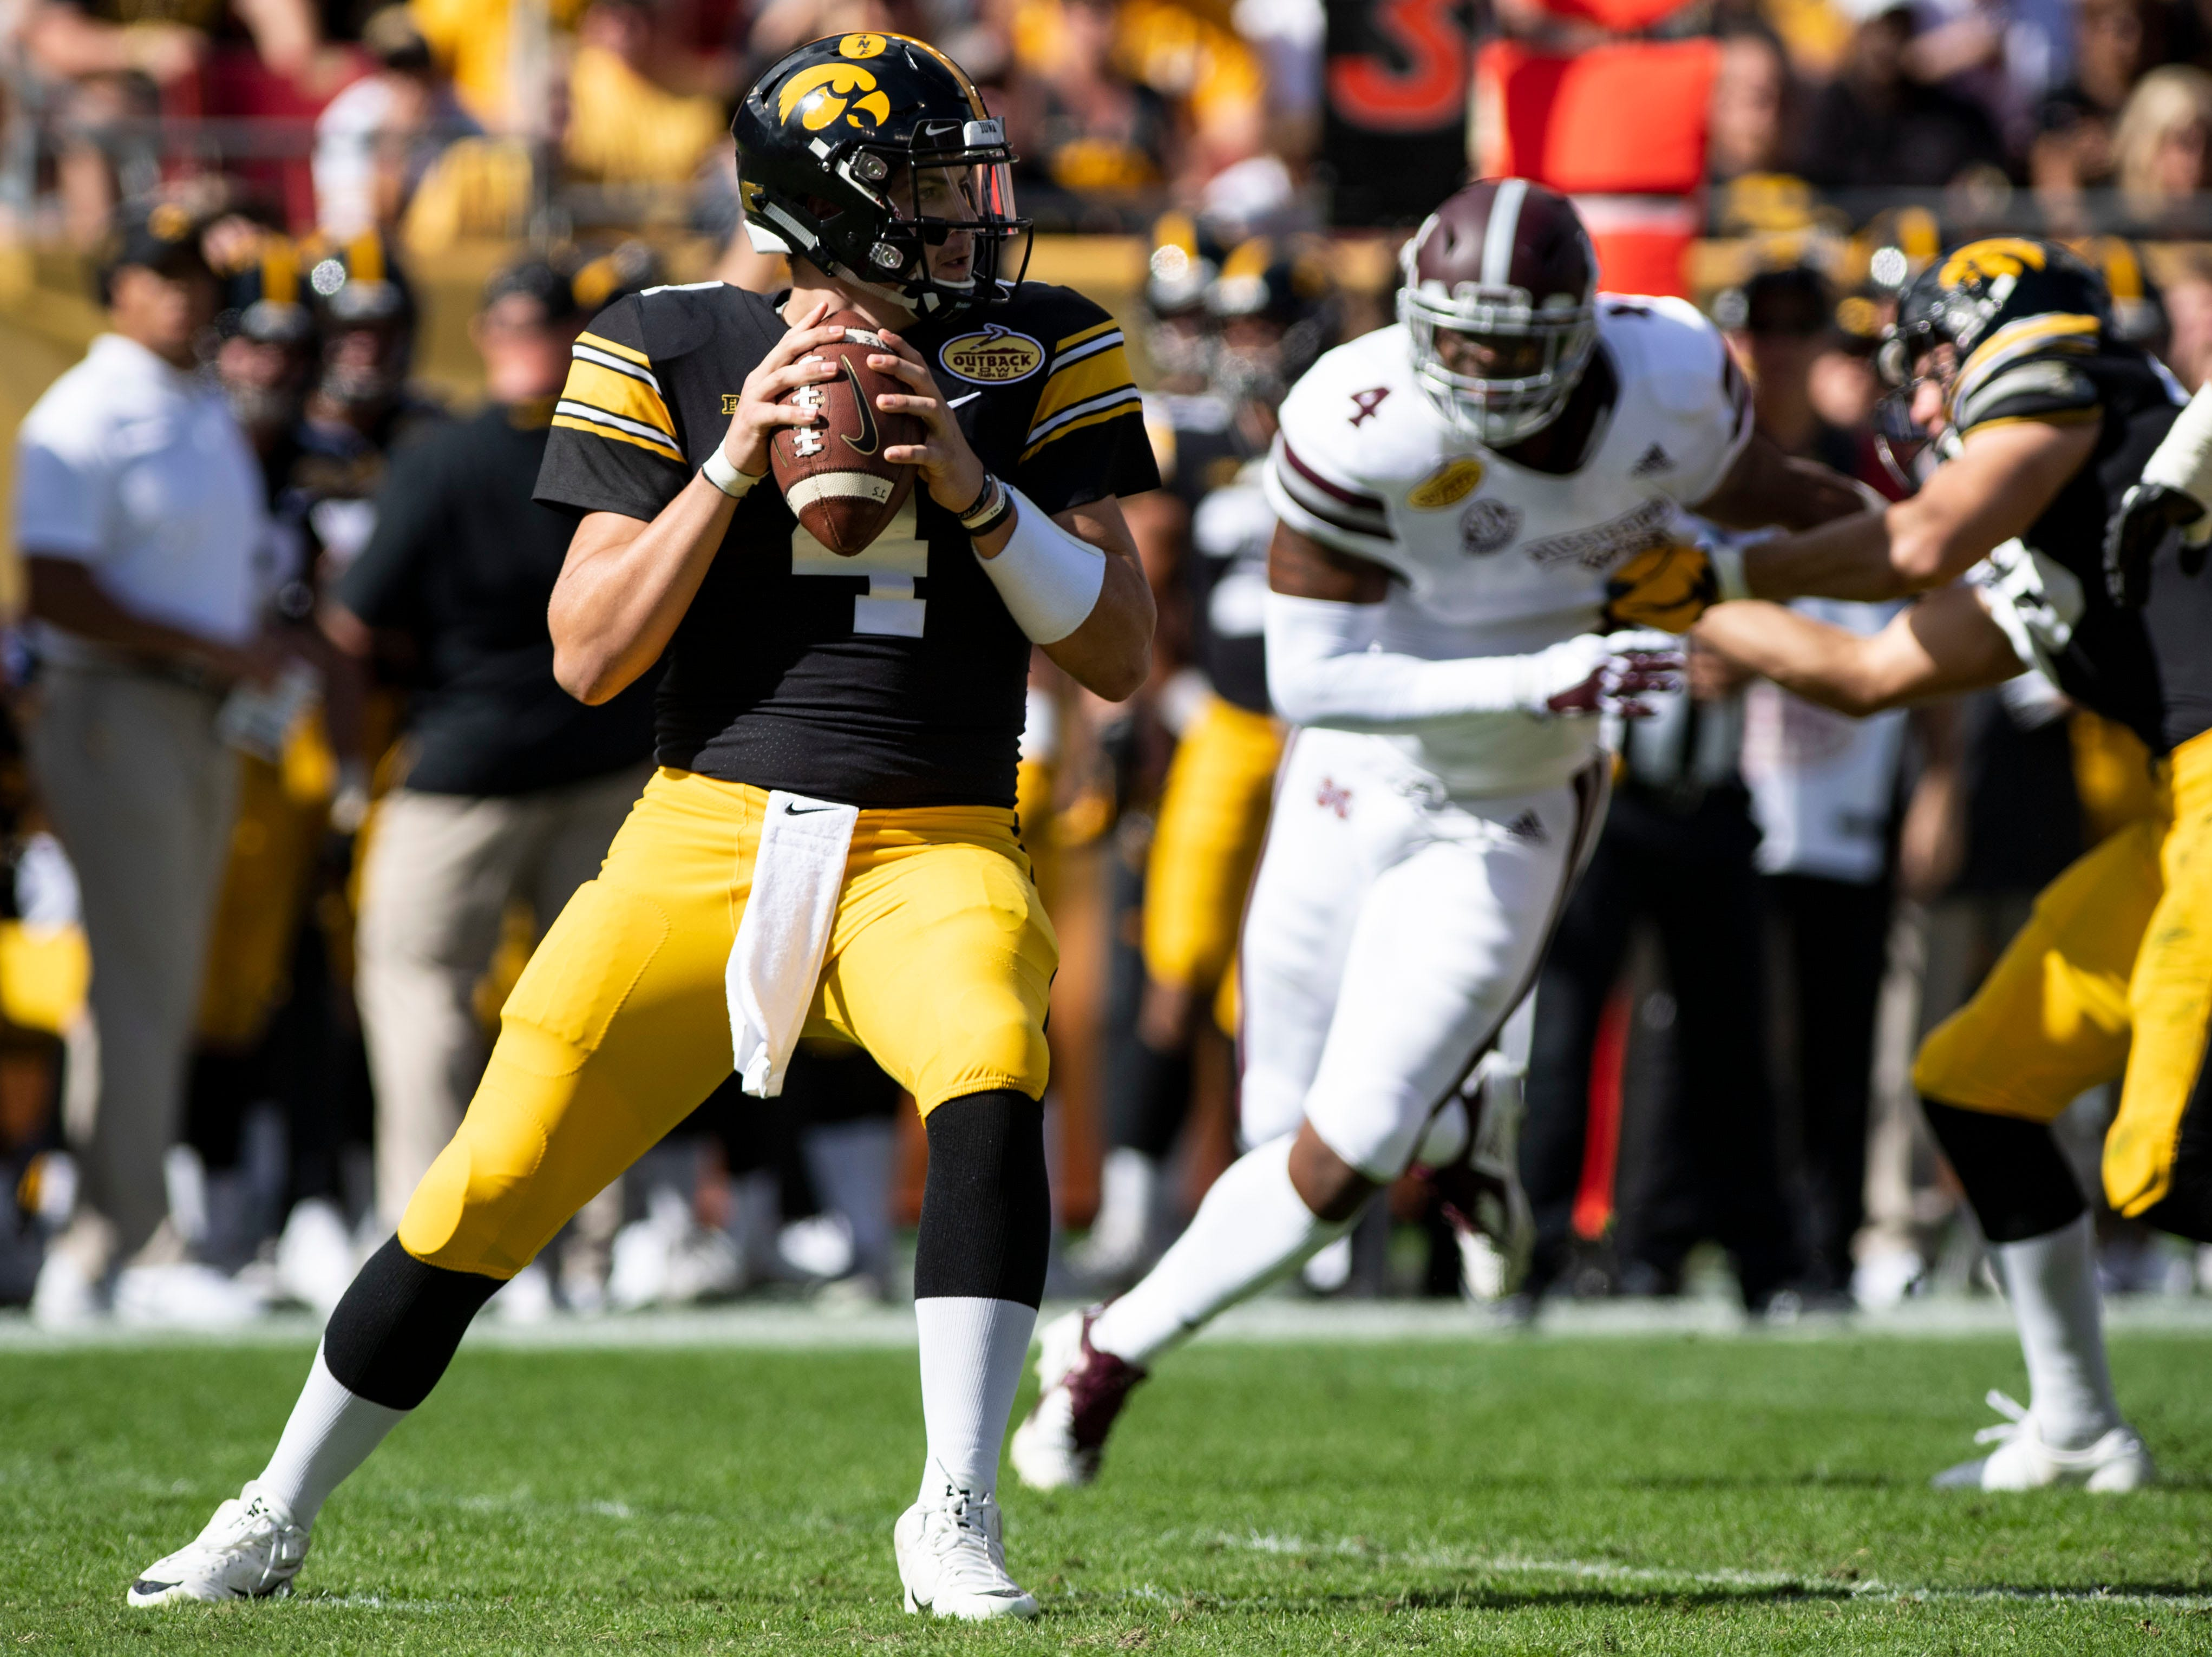 Jan 1, 2019; Tampa, FL, USA; Iowa Hawkeyes quarterback Nate Stanley (4) looks to pass during the first quarter against the Mississippi State Bulldogs in the 2019 Outback Bowl at Raymond James Stadium. Mandatory Credit: Douglas DeFelice-USA TODAY Sports